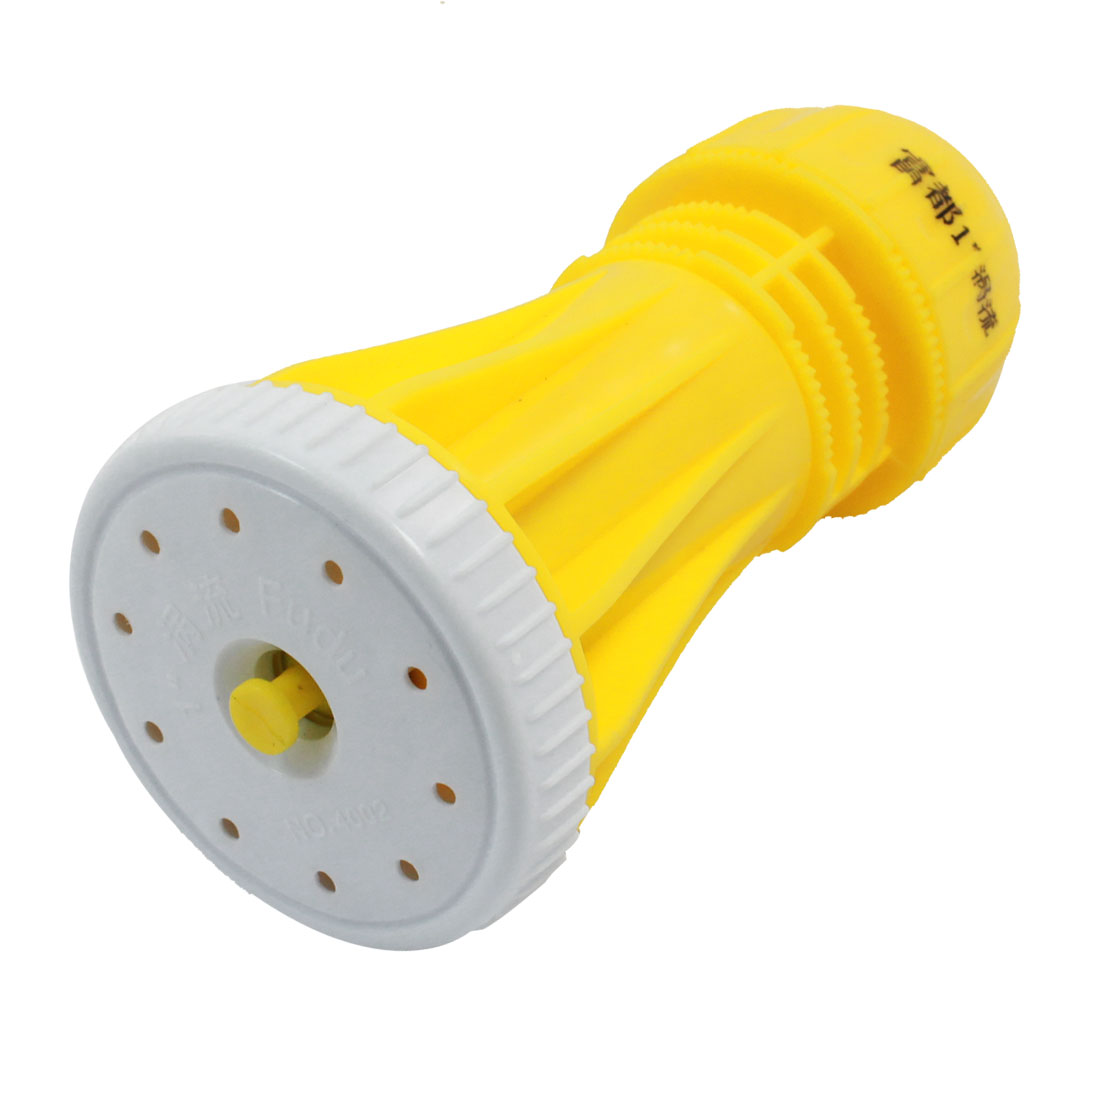 Yellow Plastic Quick Hose Connector Gardening Lawn Sprayer Nozzle